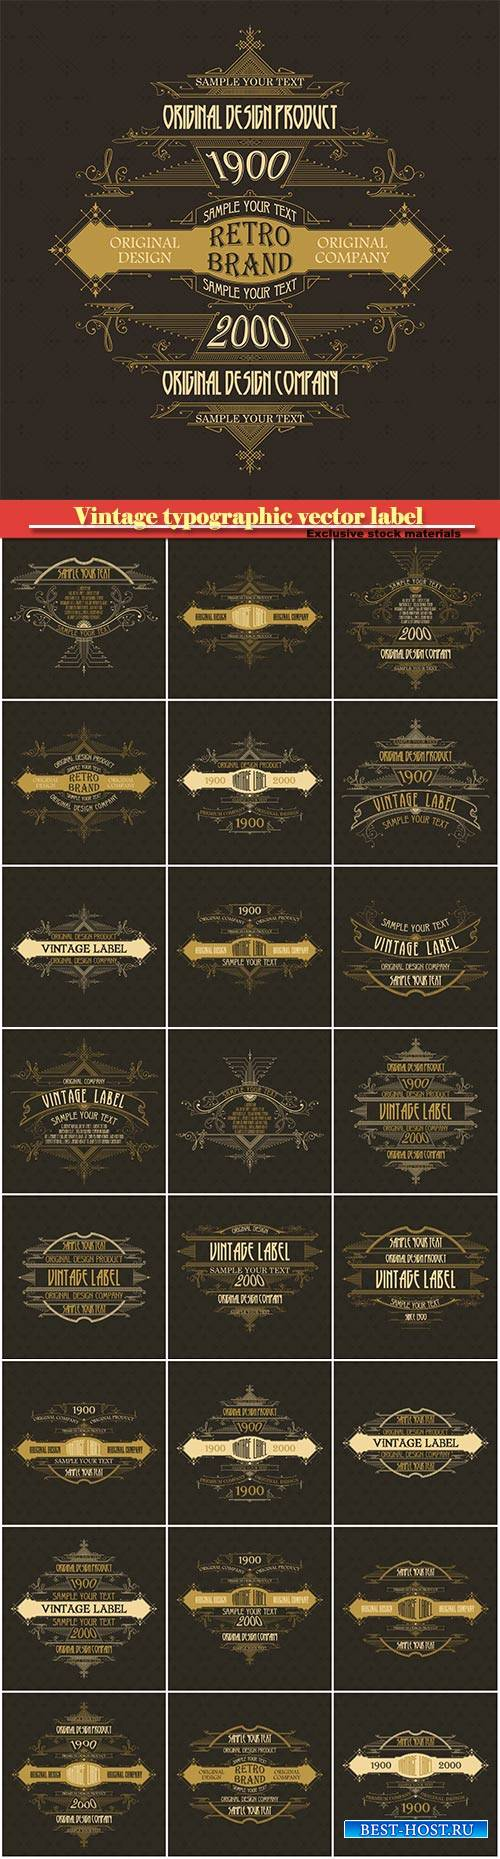 Vintage typographic vector premium label